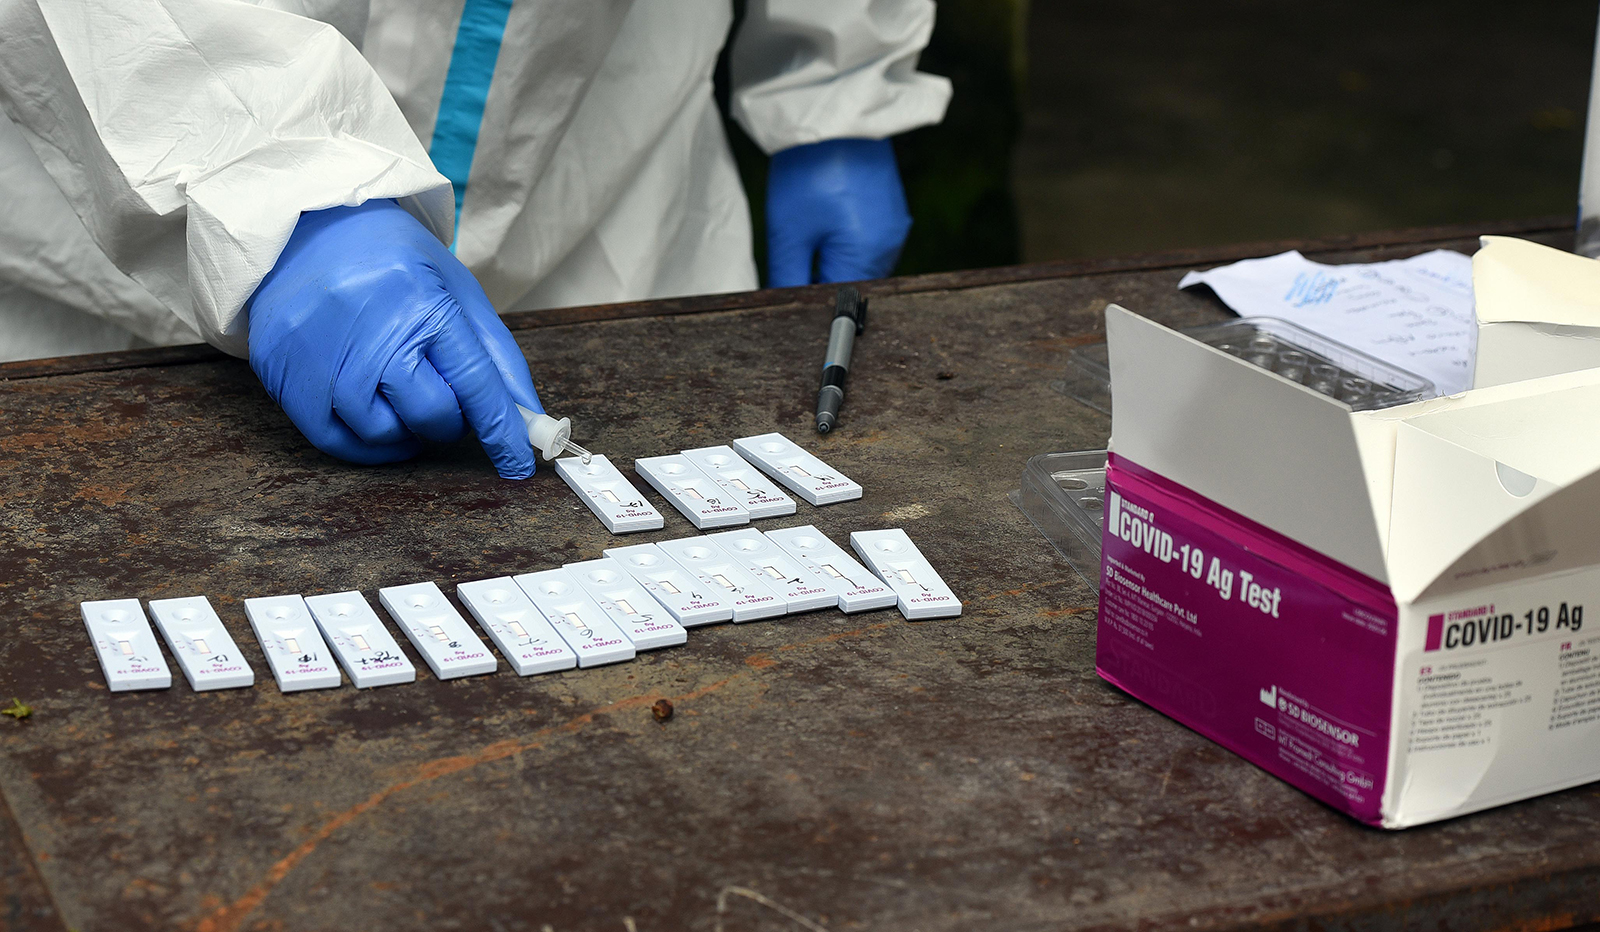 A health worker conducts a coronavirus rapid antigen test from collected swab samples in New Delhi, India.